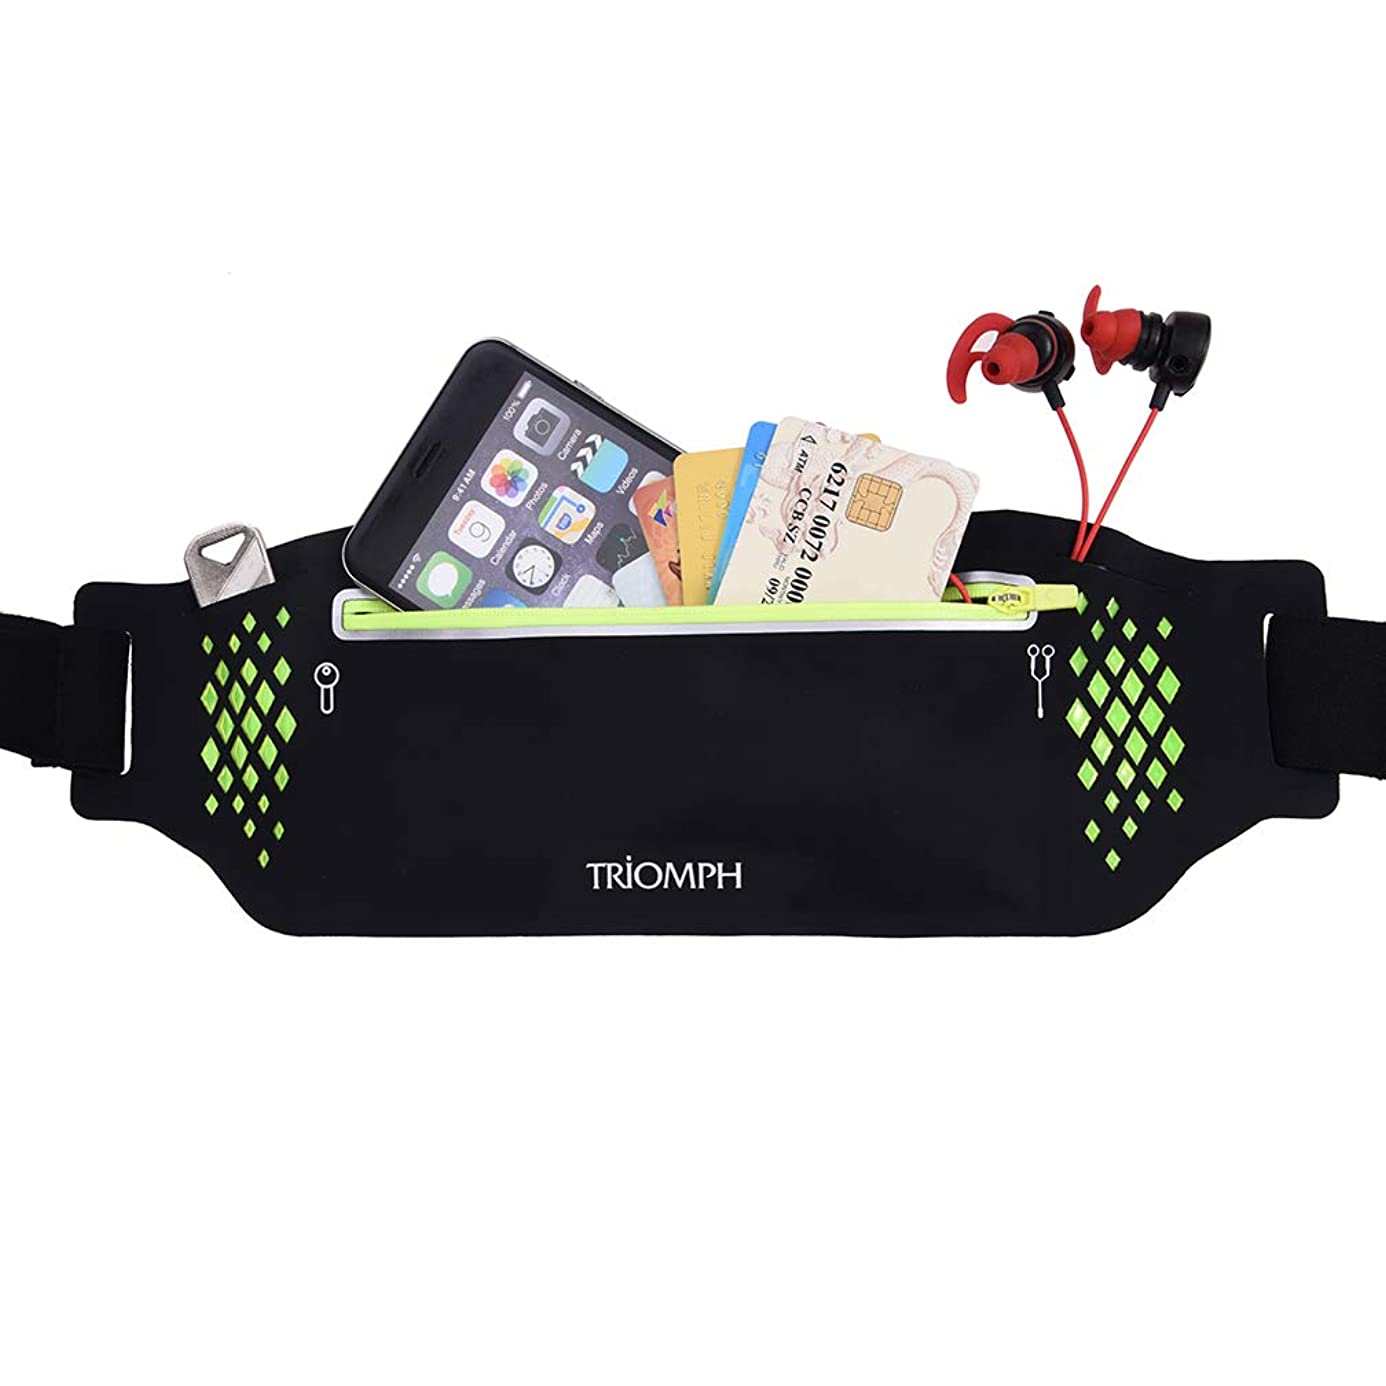 Triomph Running Belt Waist Pack Fitness Waist Bag for Hiking, Water Resistant Runners, Adjustable Belt for iPhone Xs Max, XR and Any Large Smartphone, 3 Pockets w/Reflective Zippers, Earphone Hole